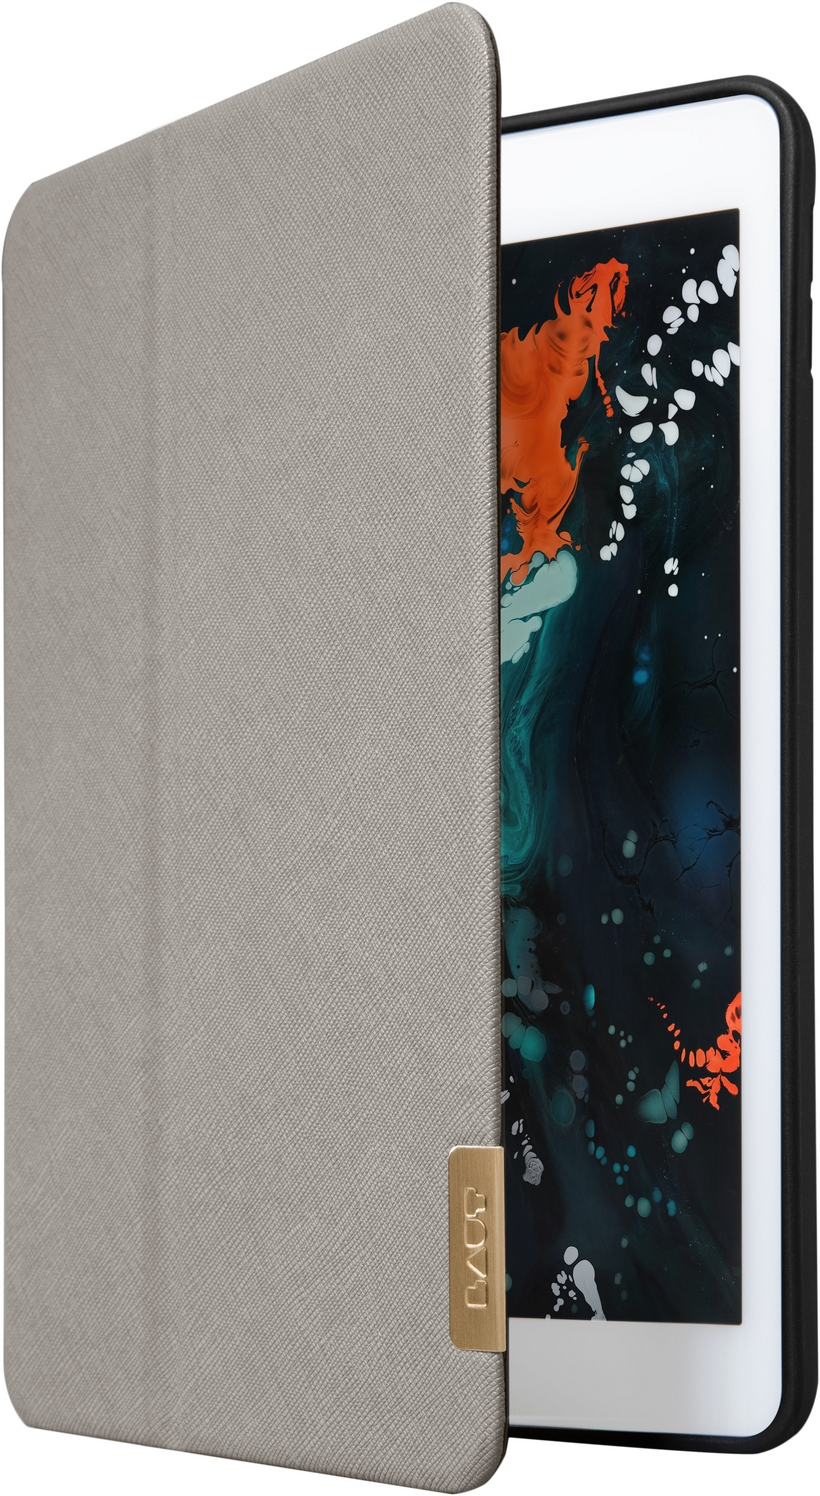 PRESTIGE Folio For iPad Mini 5